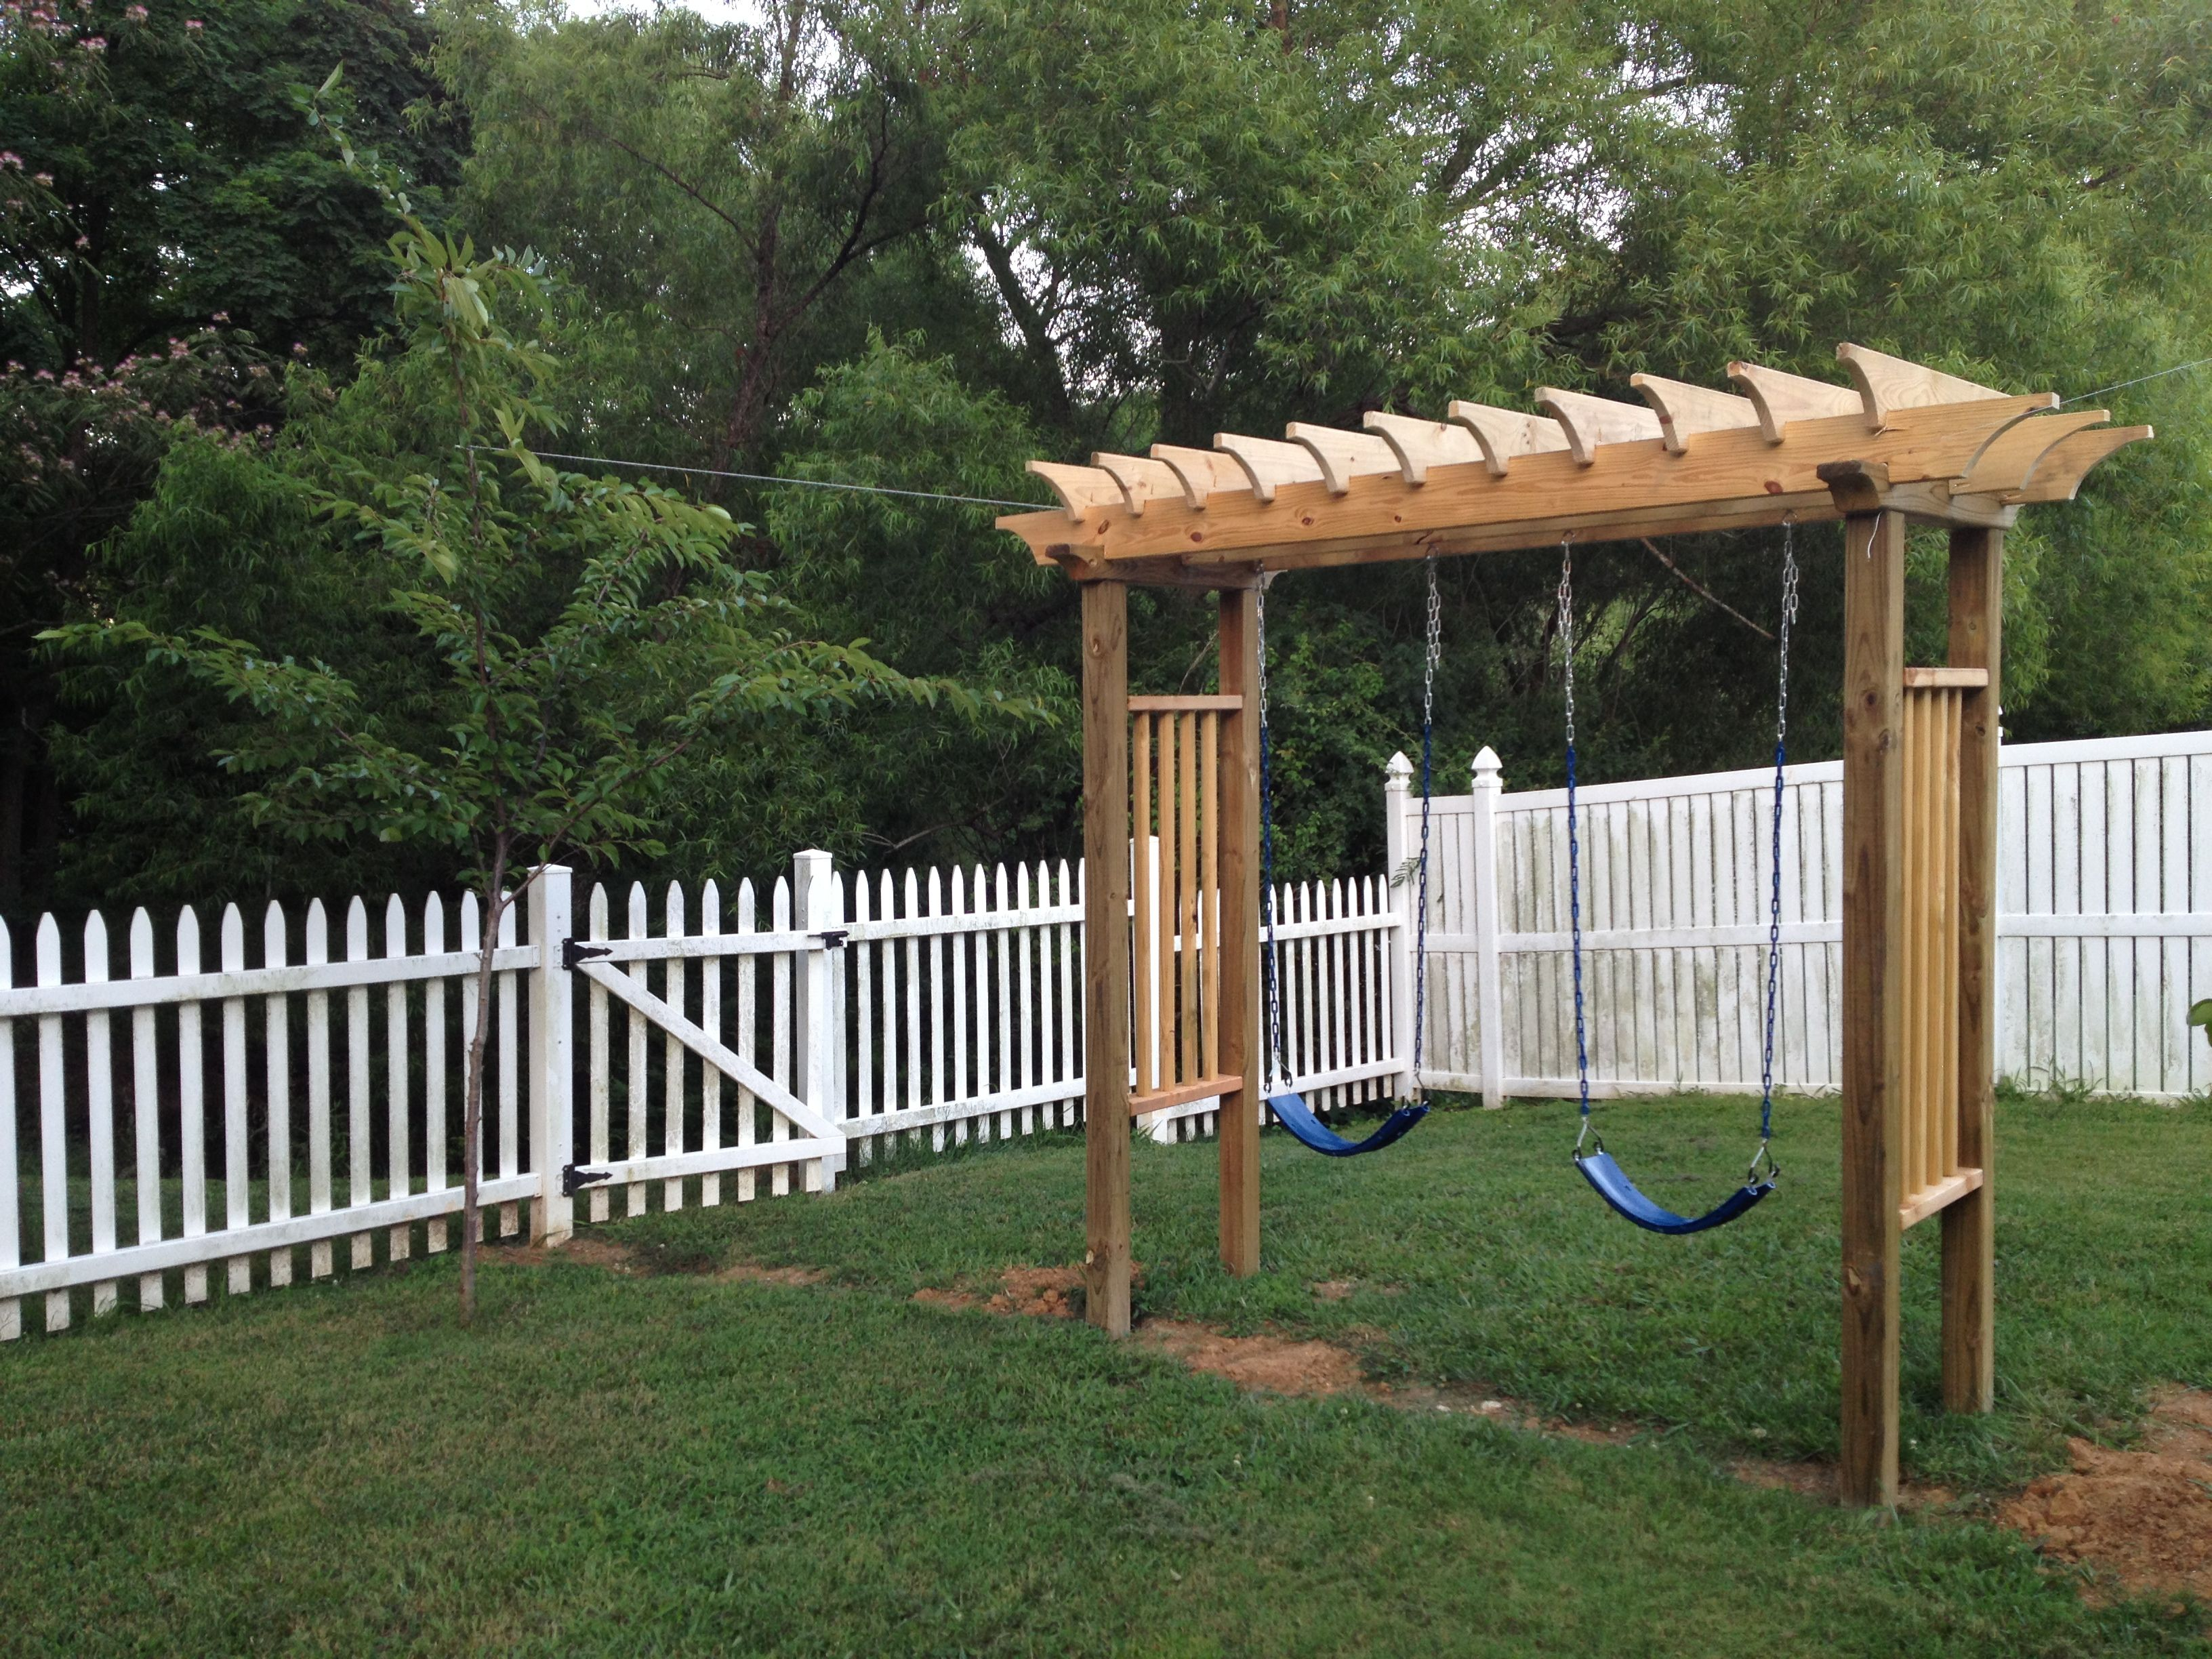 This is the new swing set i just built for the kids when for How to build a swing set for adults